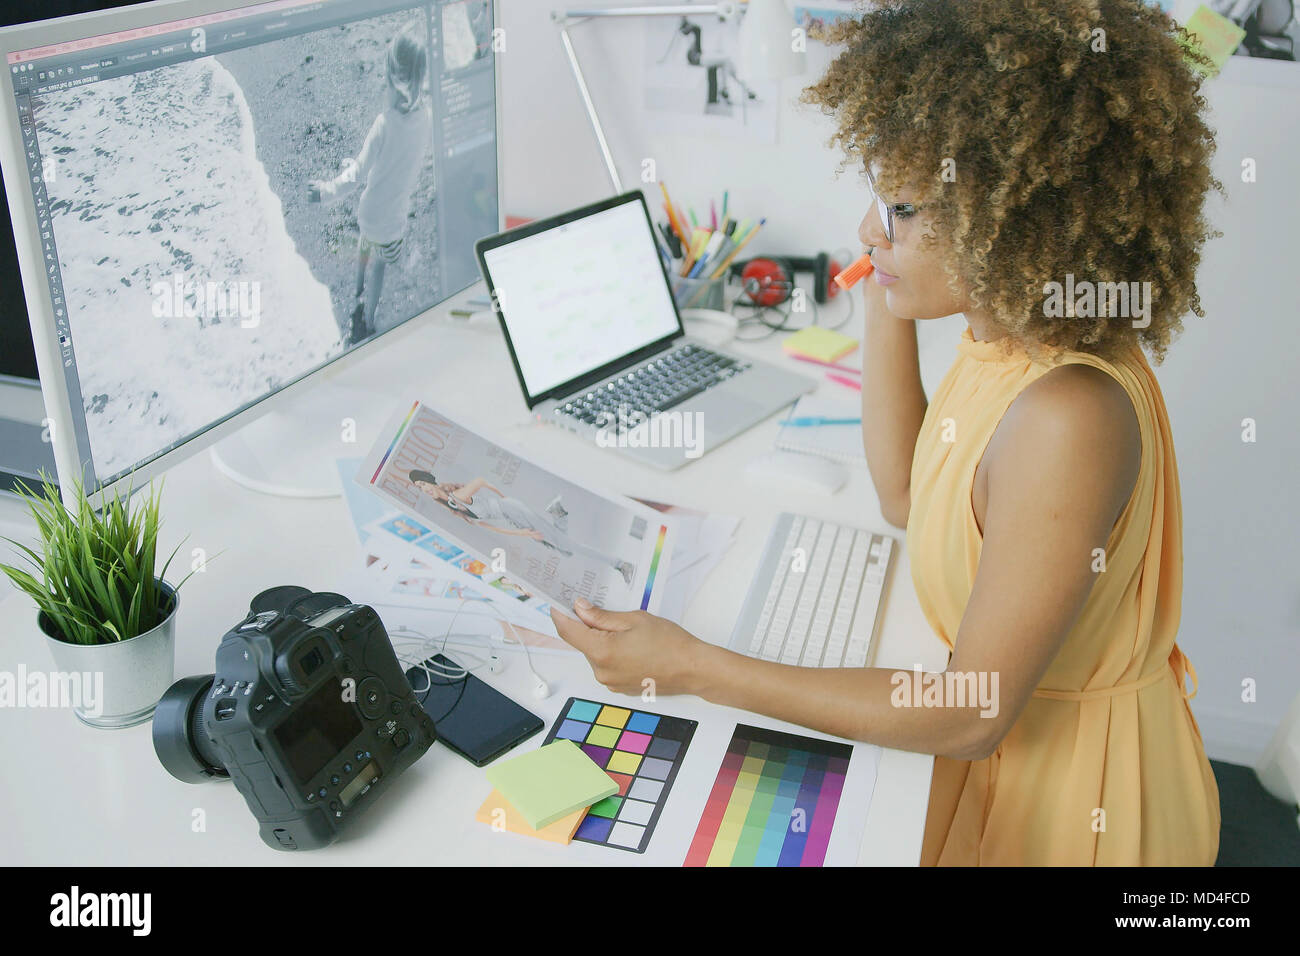 Pensive editor exploring photos - Stock Image